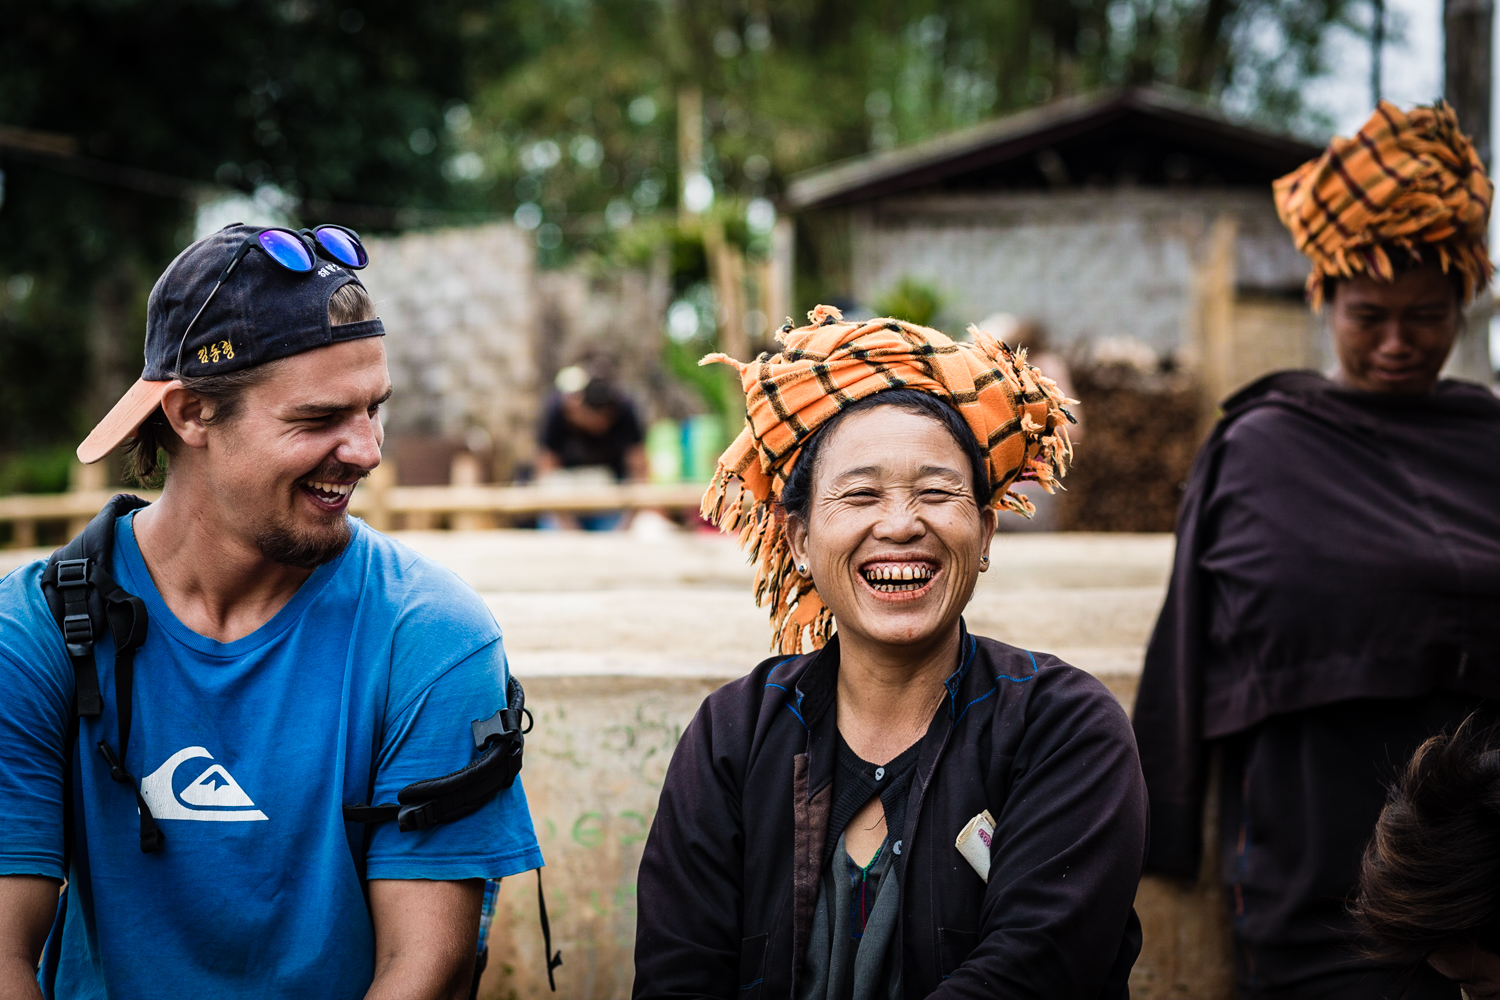 Elliott (Whales) shares a laugh with a resident of Kyaut Su, a village a day's walk from Kalaw.Although we didn't speak the same language, we managed to make joke and share some laughs with the locals.